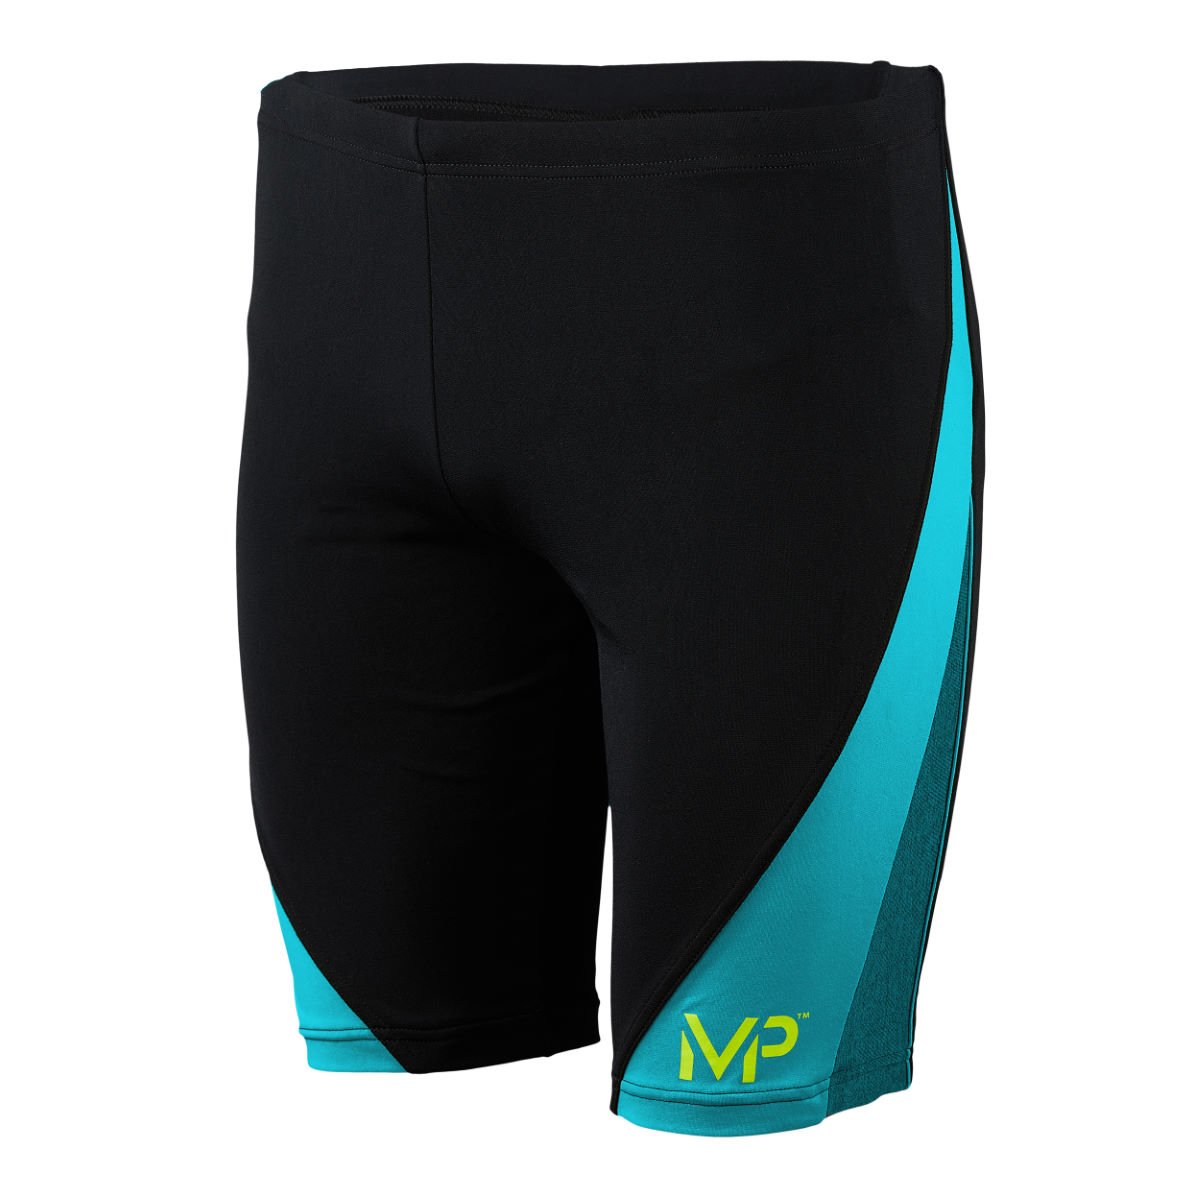 """Image of Jammer MP Arkos - 26"""" Black/Turq 